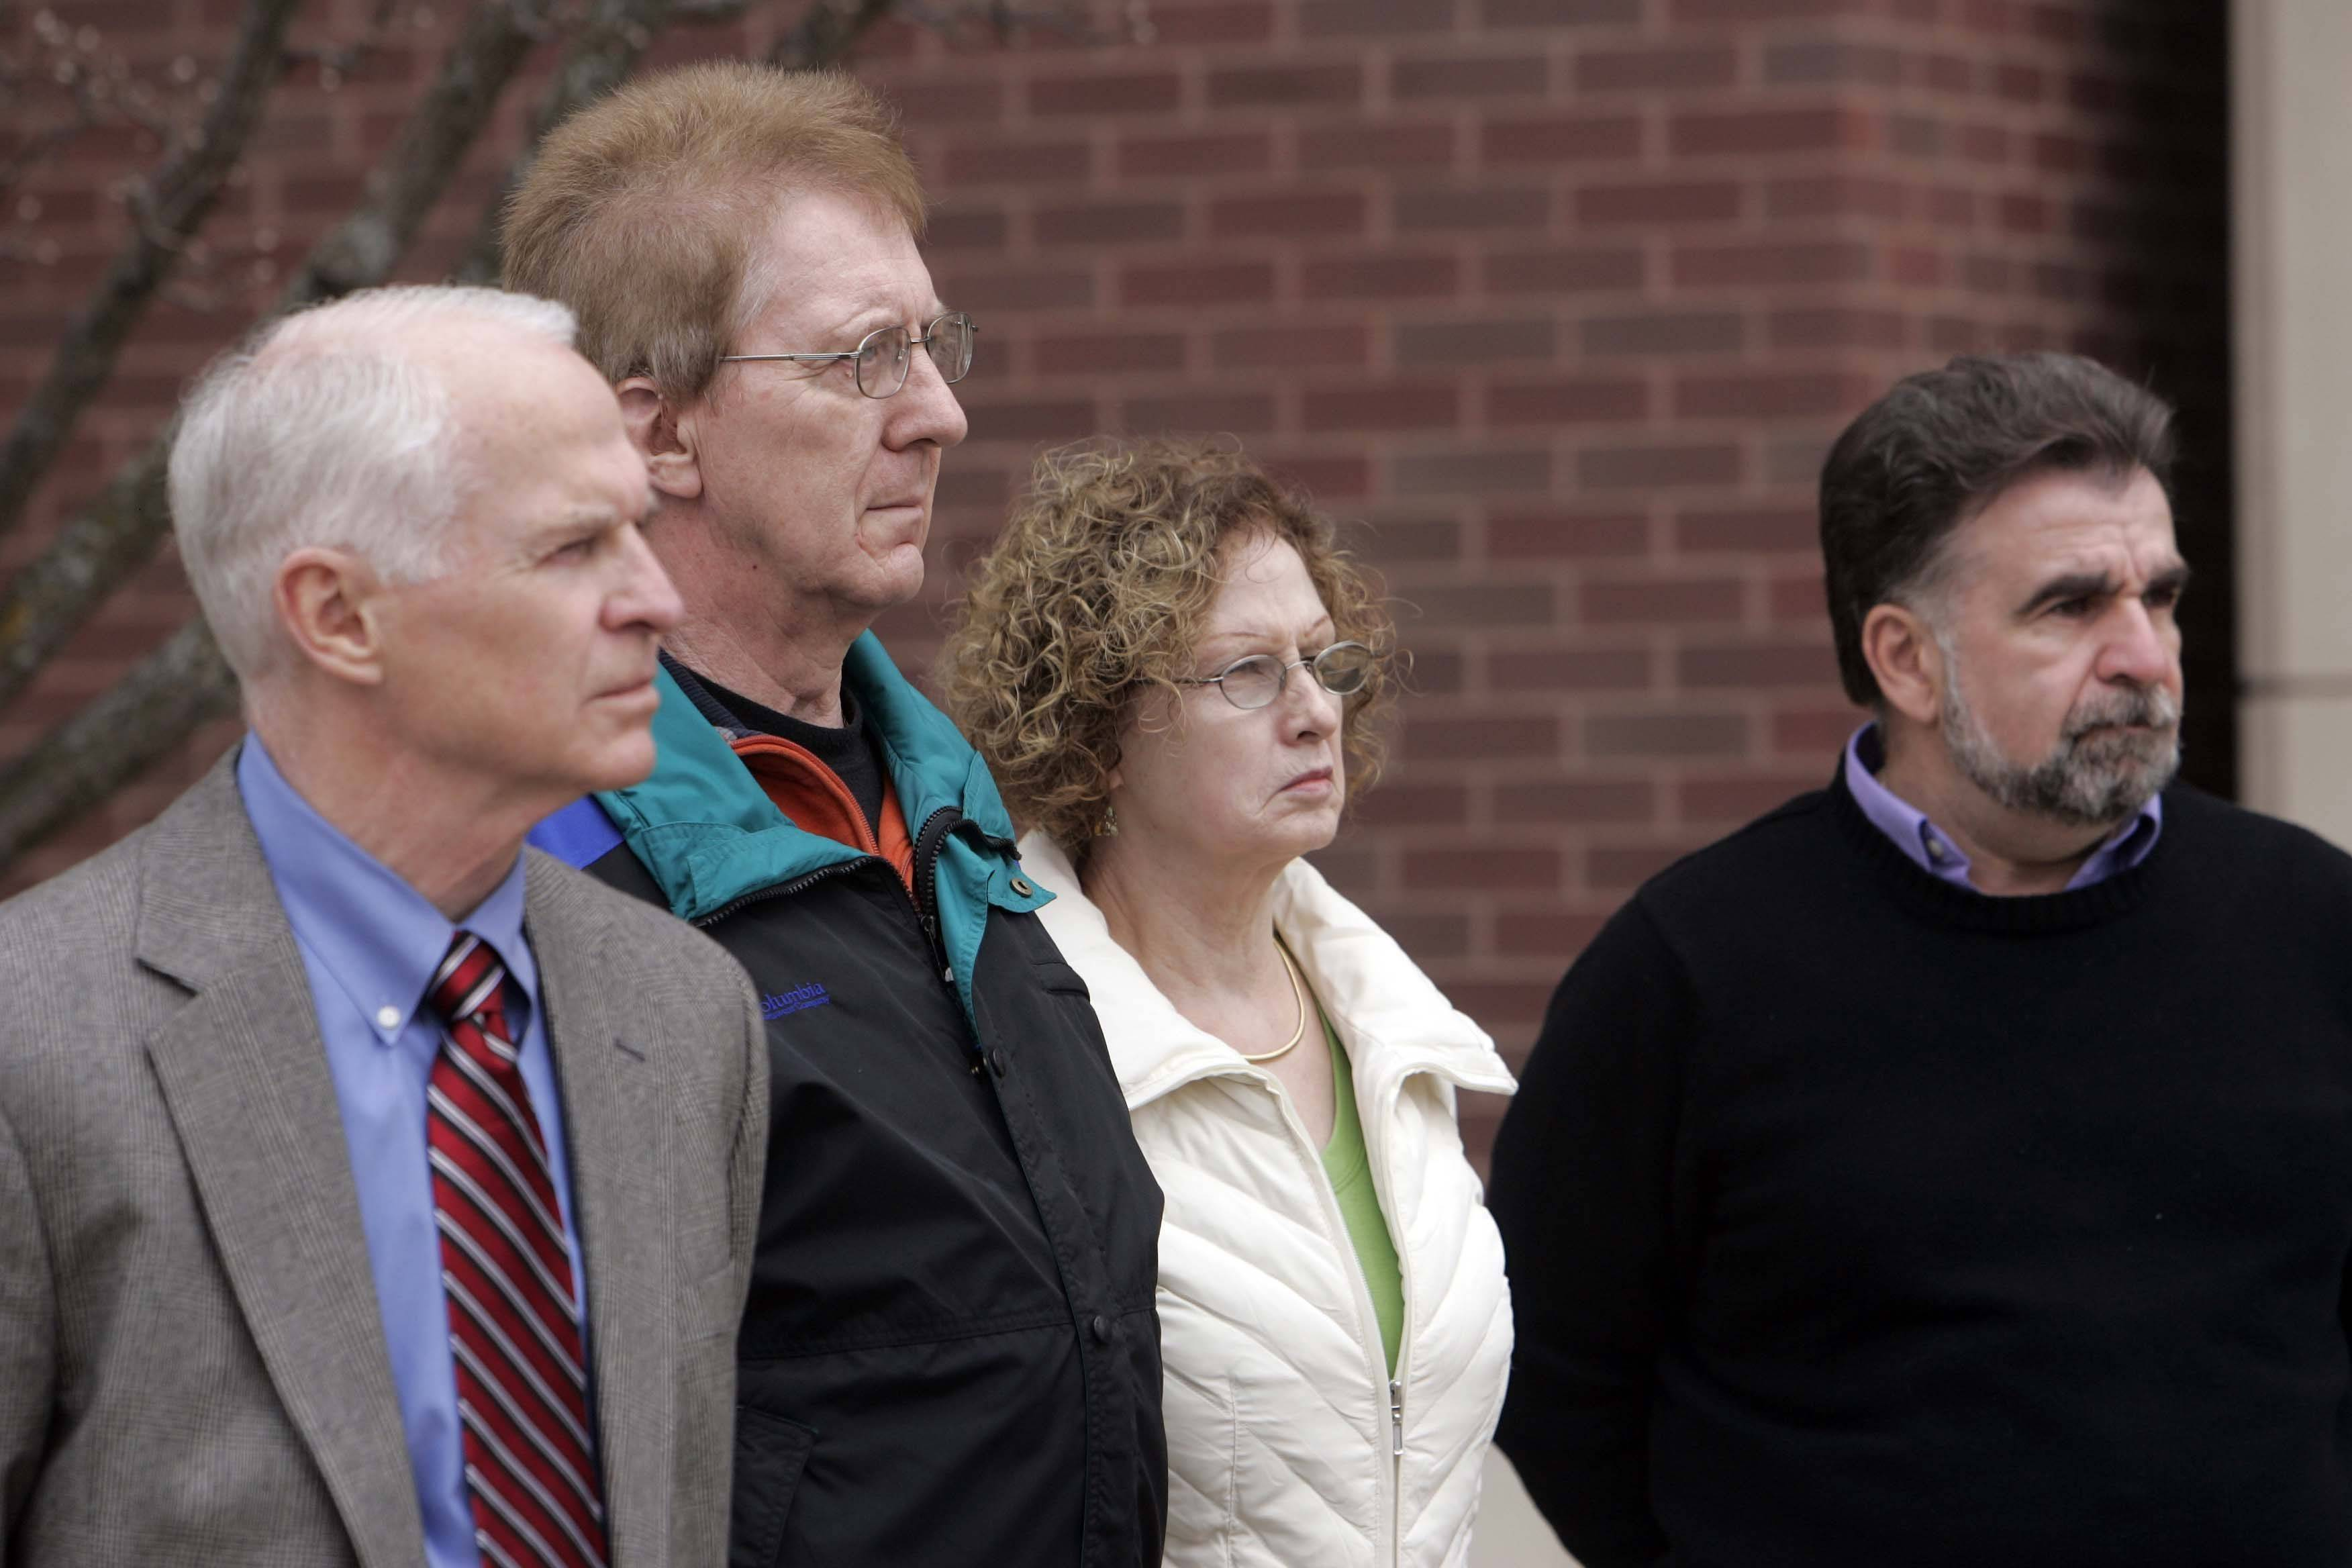 Supporters Bob Borchert, left, John Reckamp, Ria Reckamp and Tony Scimeca were among supporters of McHenry County State's Attorney Lou Bianchi who filed suit Thursday asking a judge to dismiss the special prosecutors who investigated Bianchi on corruption charges for incompetence and over billing.